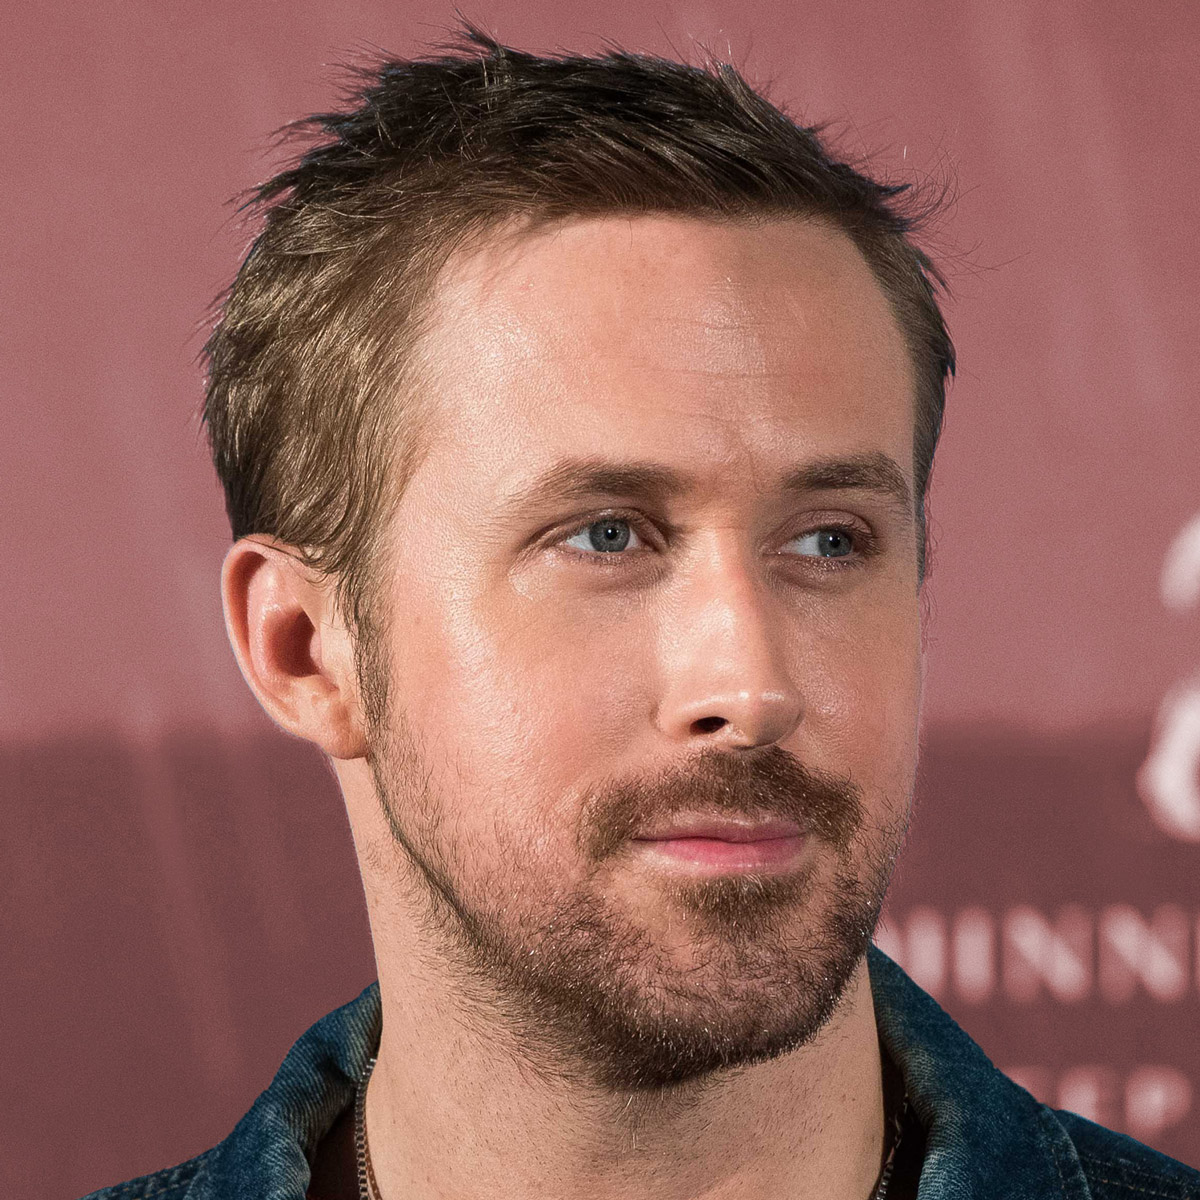 Ryan Gosling Blade Runner 2049 haircut